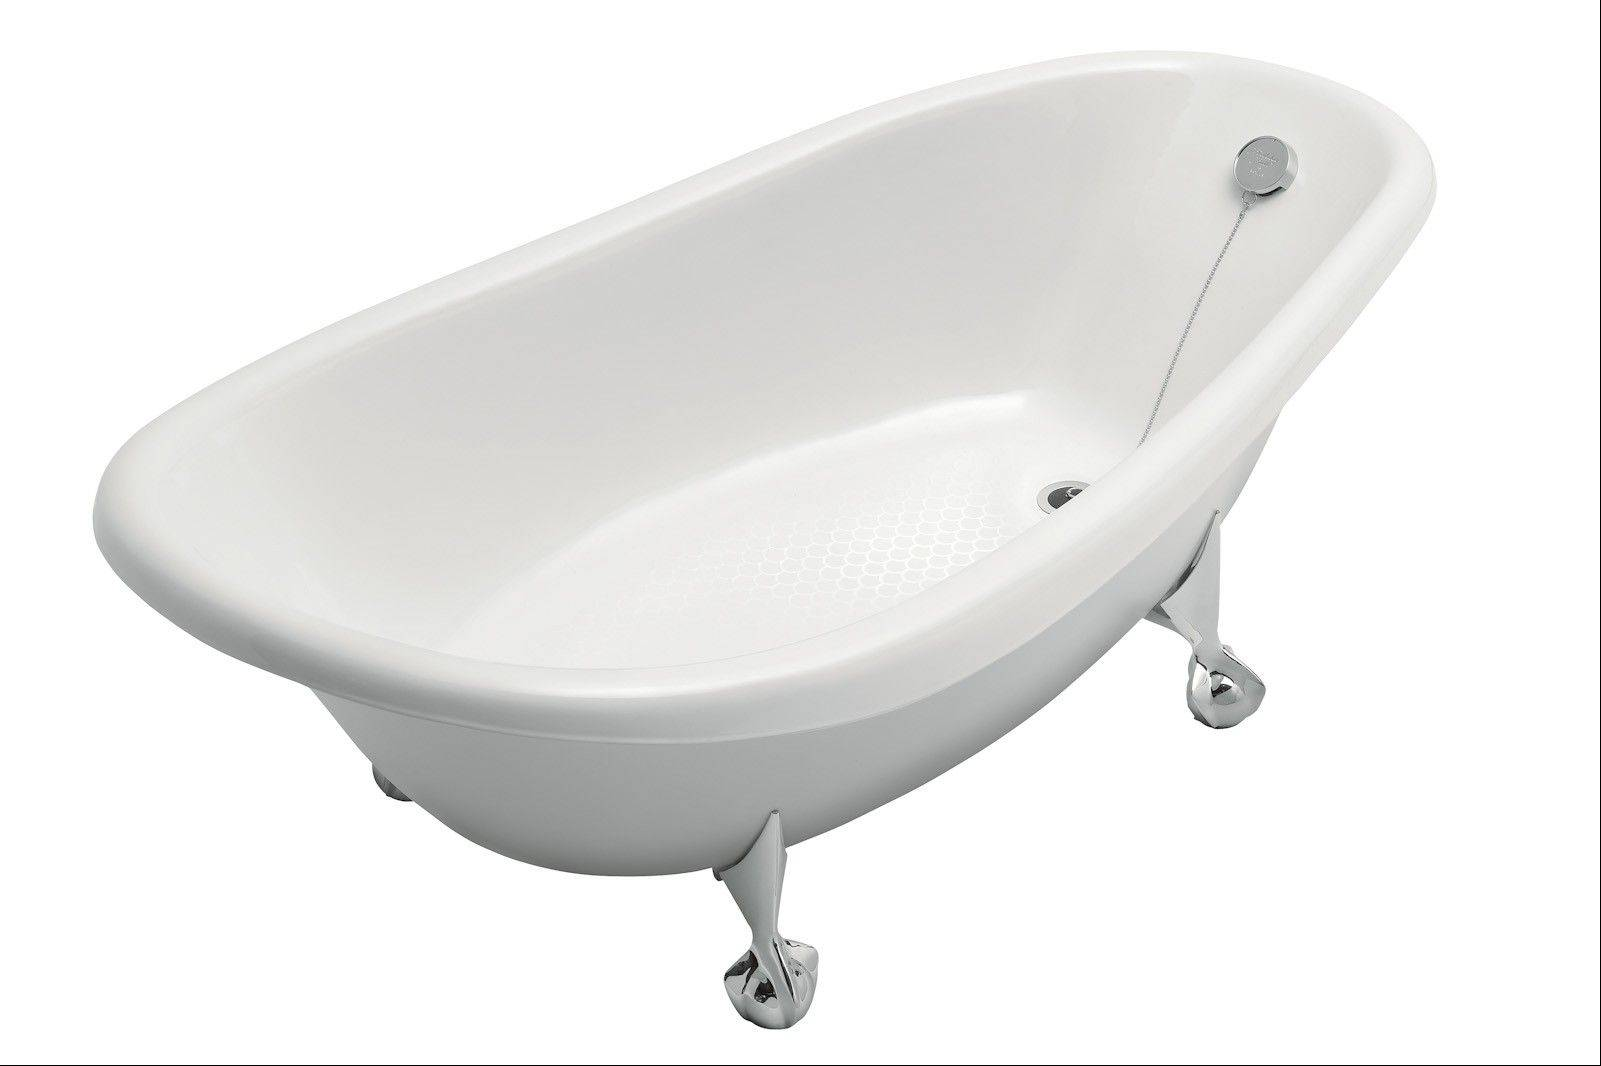 Claw-foot, cast-iron tubs are still being made, and the free-standing design can create a striking focal point for any bathroom.